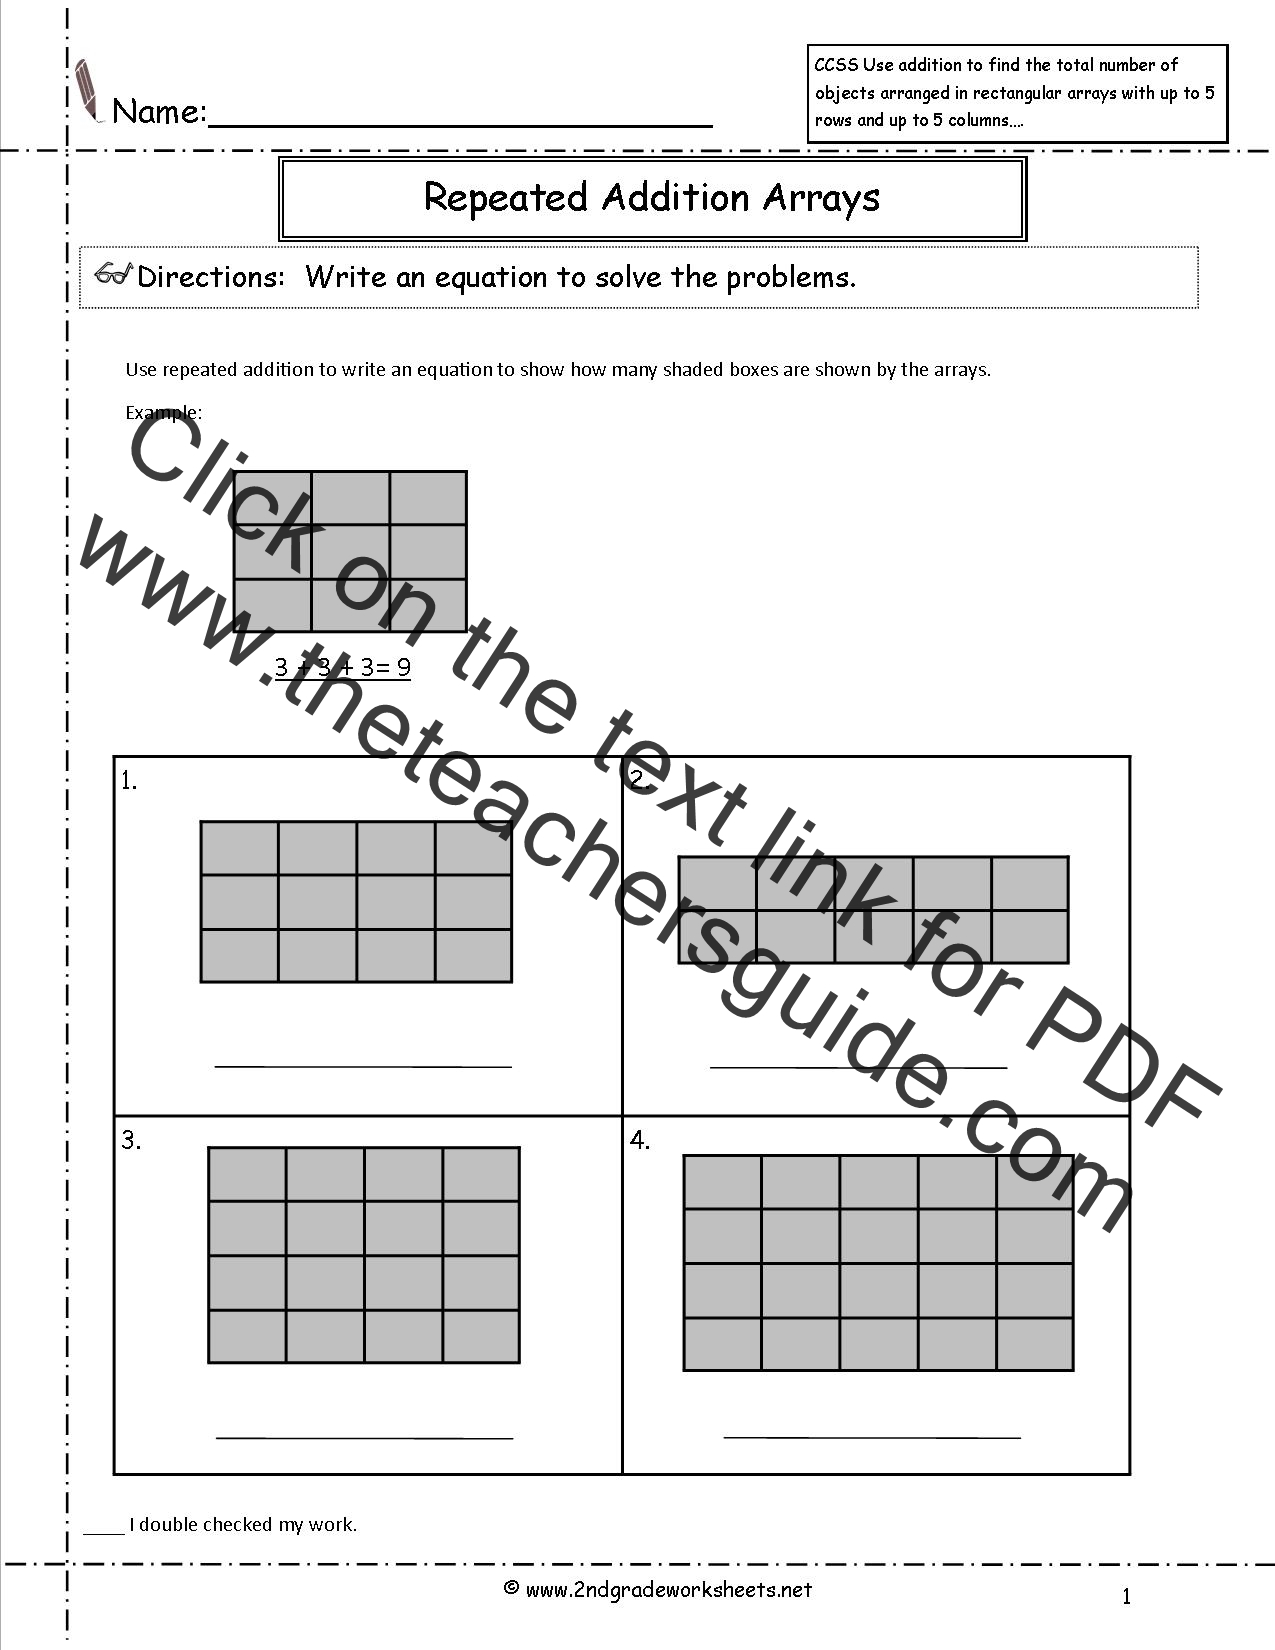 Carson Dellosa Tracing Worksheet